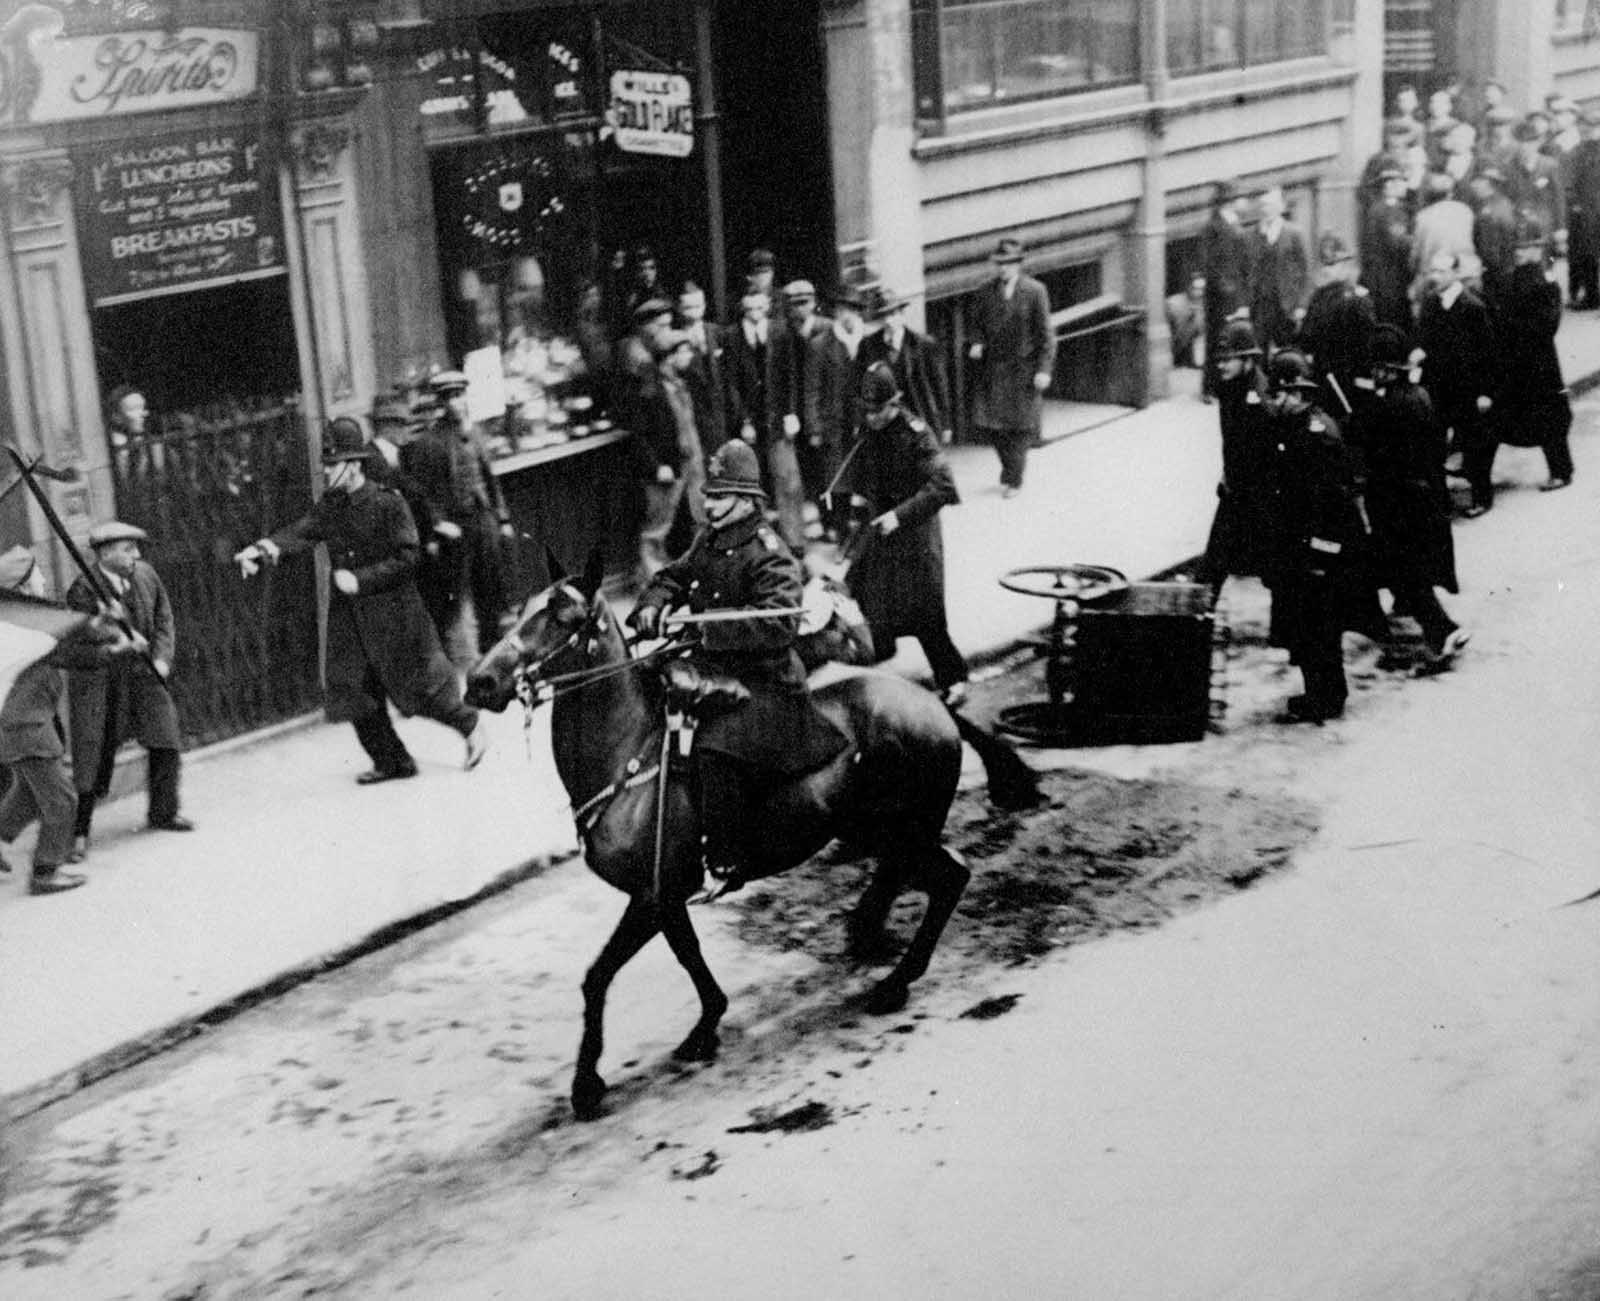 Communist loyalists attempt to stage a riot in London. The horse mounted police officer is armed with a sword. 1930.